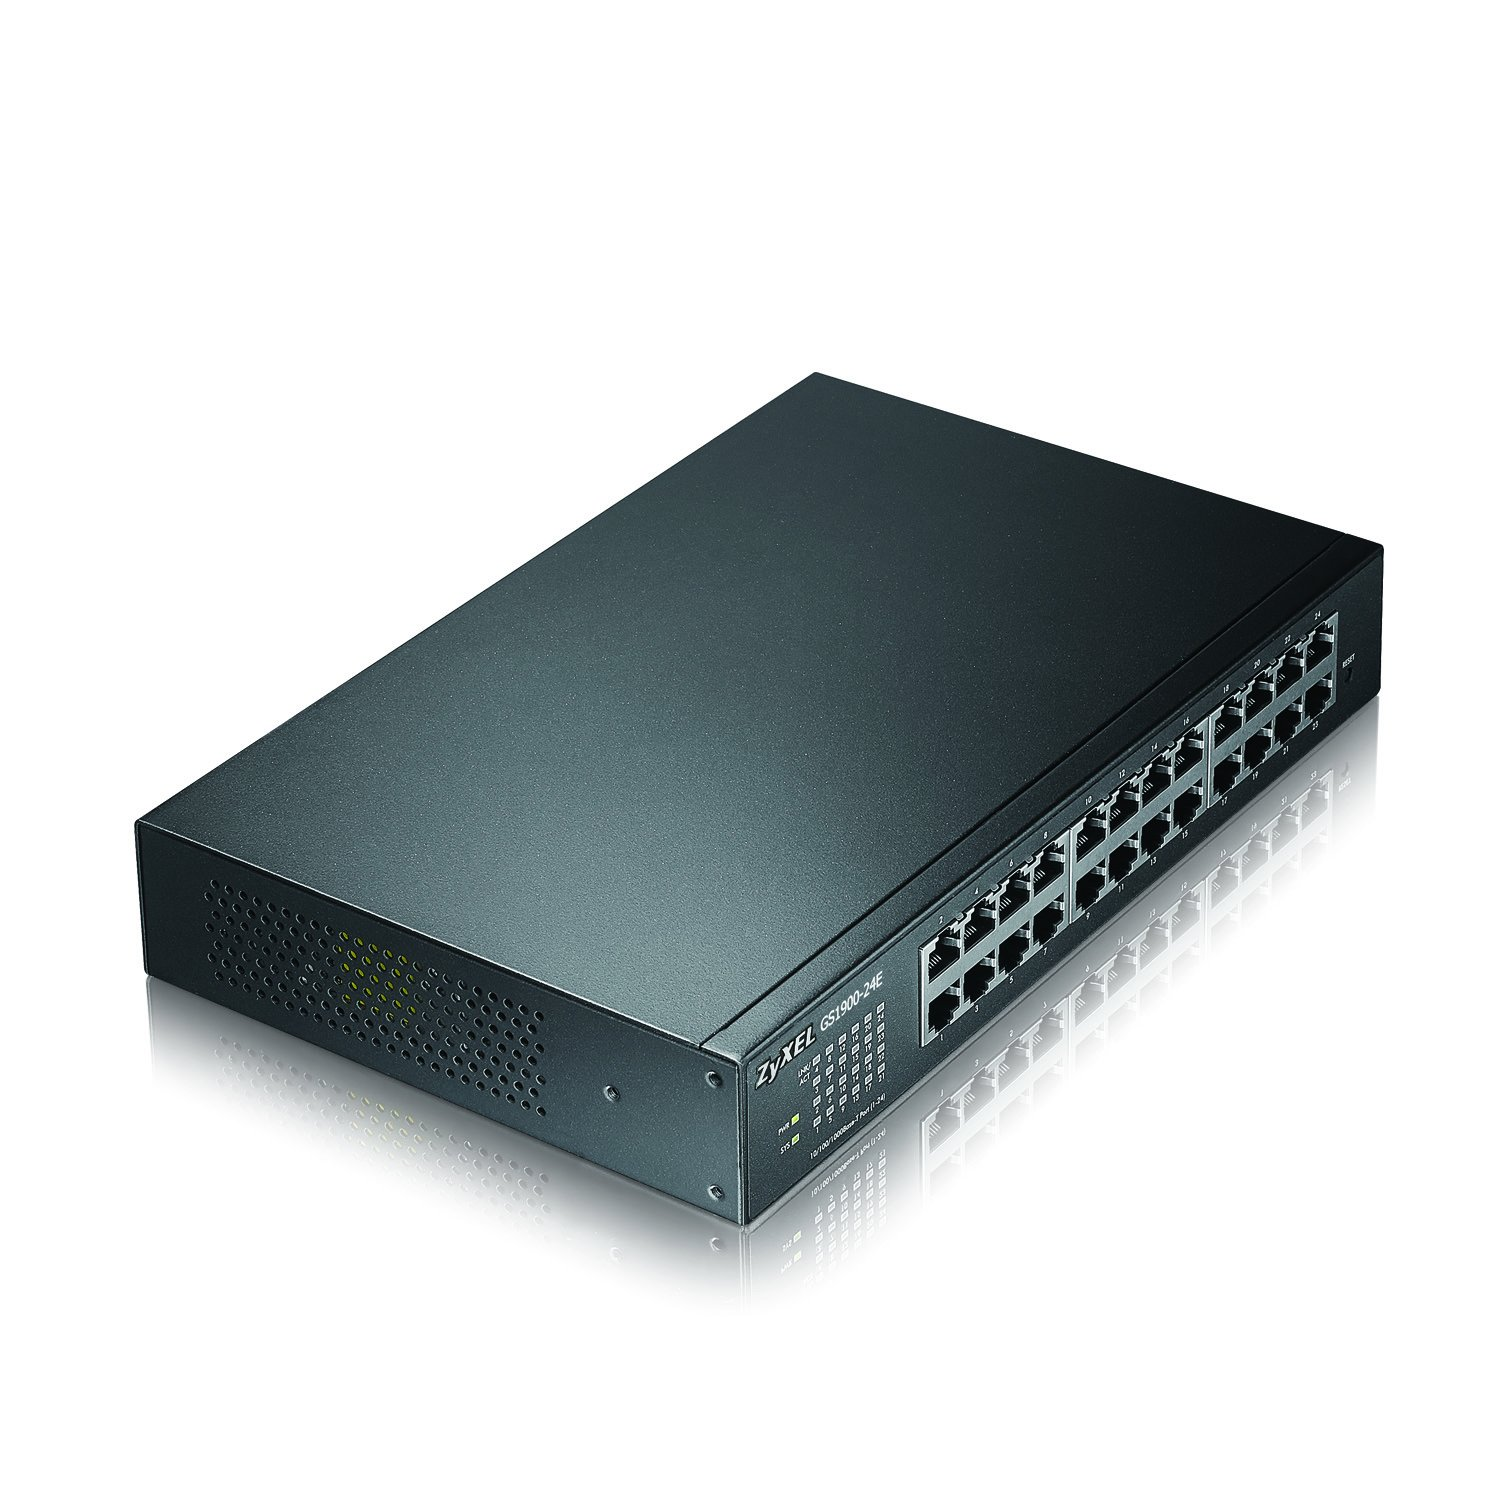 Zyxel 24 Port Gigabit Switch, Easy Smart Managed, Compact Rackmount, Fanless (GS1900-24E)